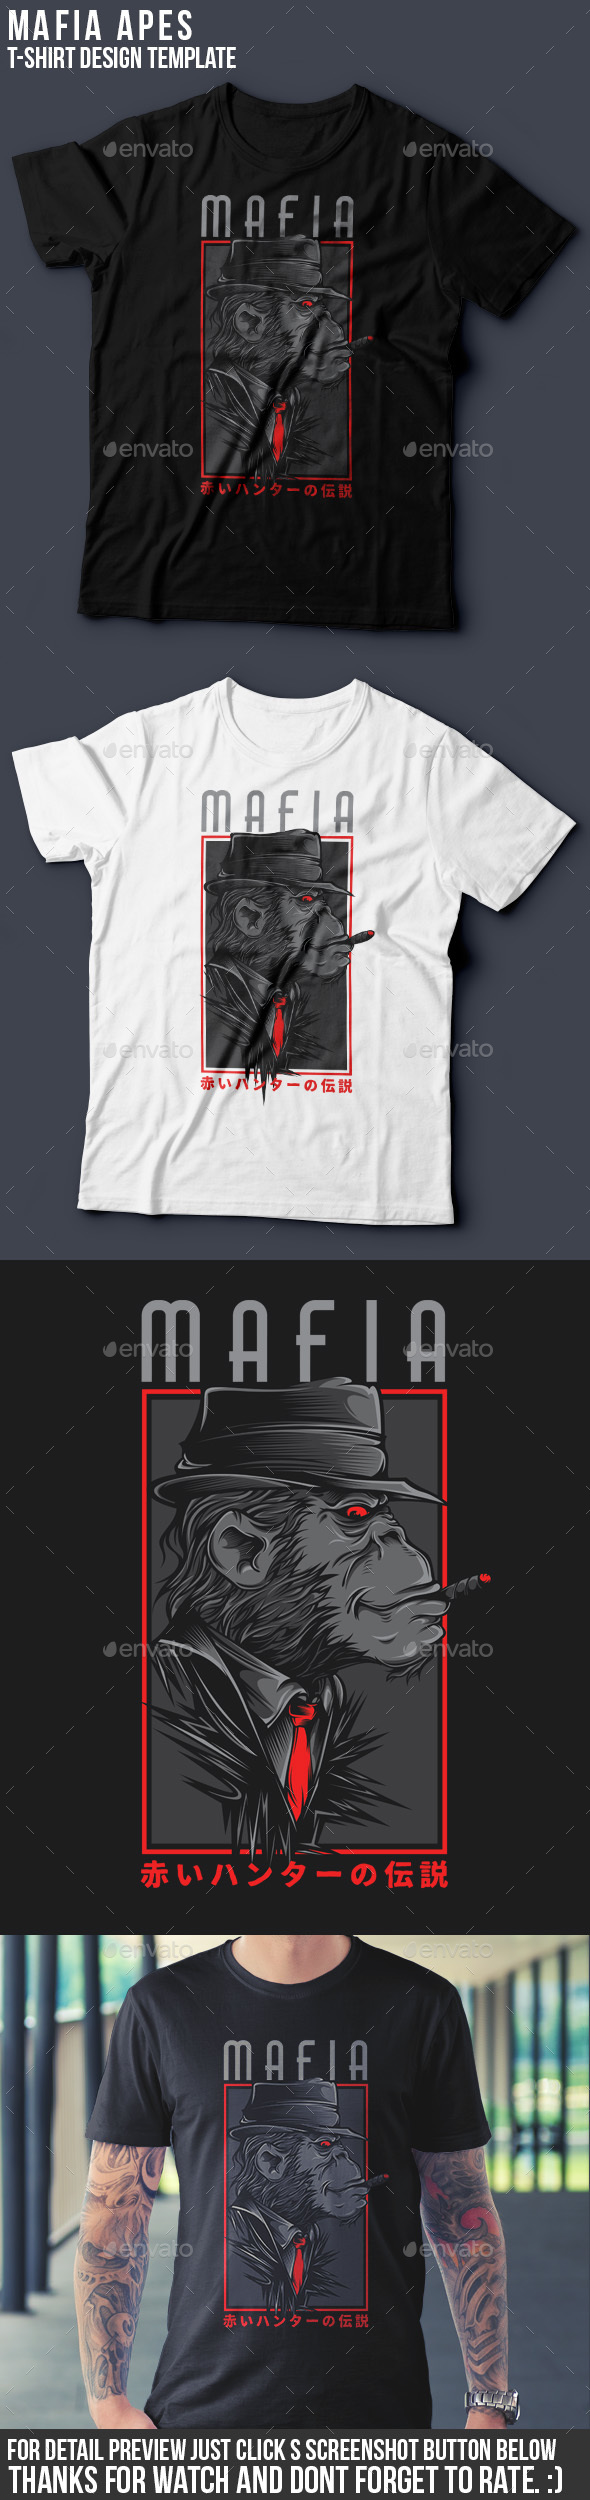 Mafia 2 T-Shirt Design